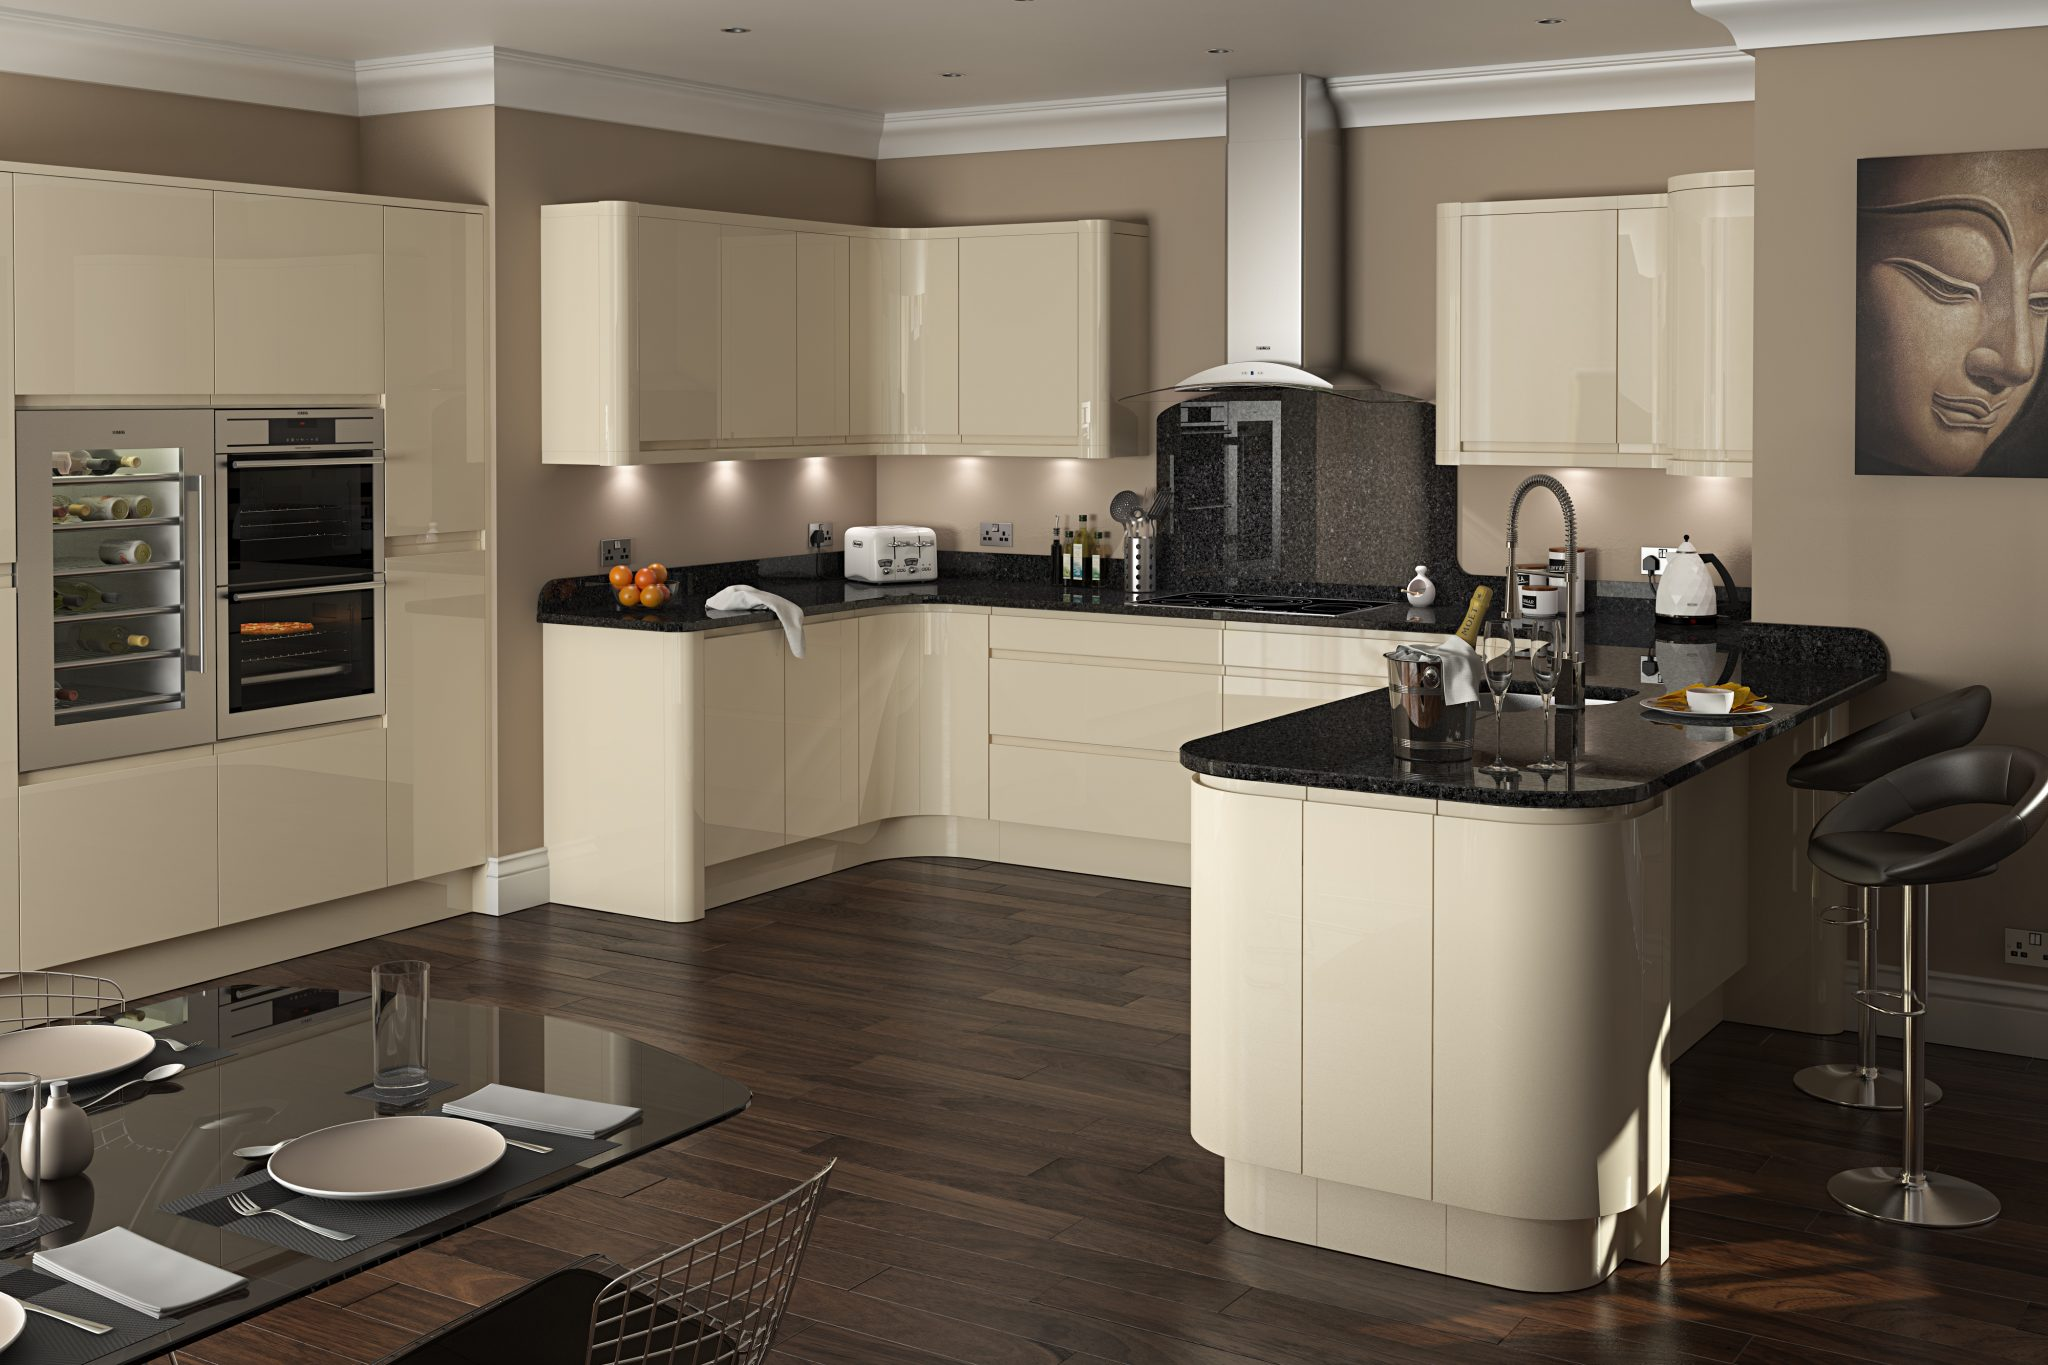 Kitchen design kitchens wirral bespoke luxury designs for Kitchen ideas design